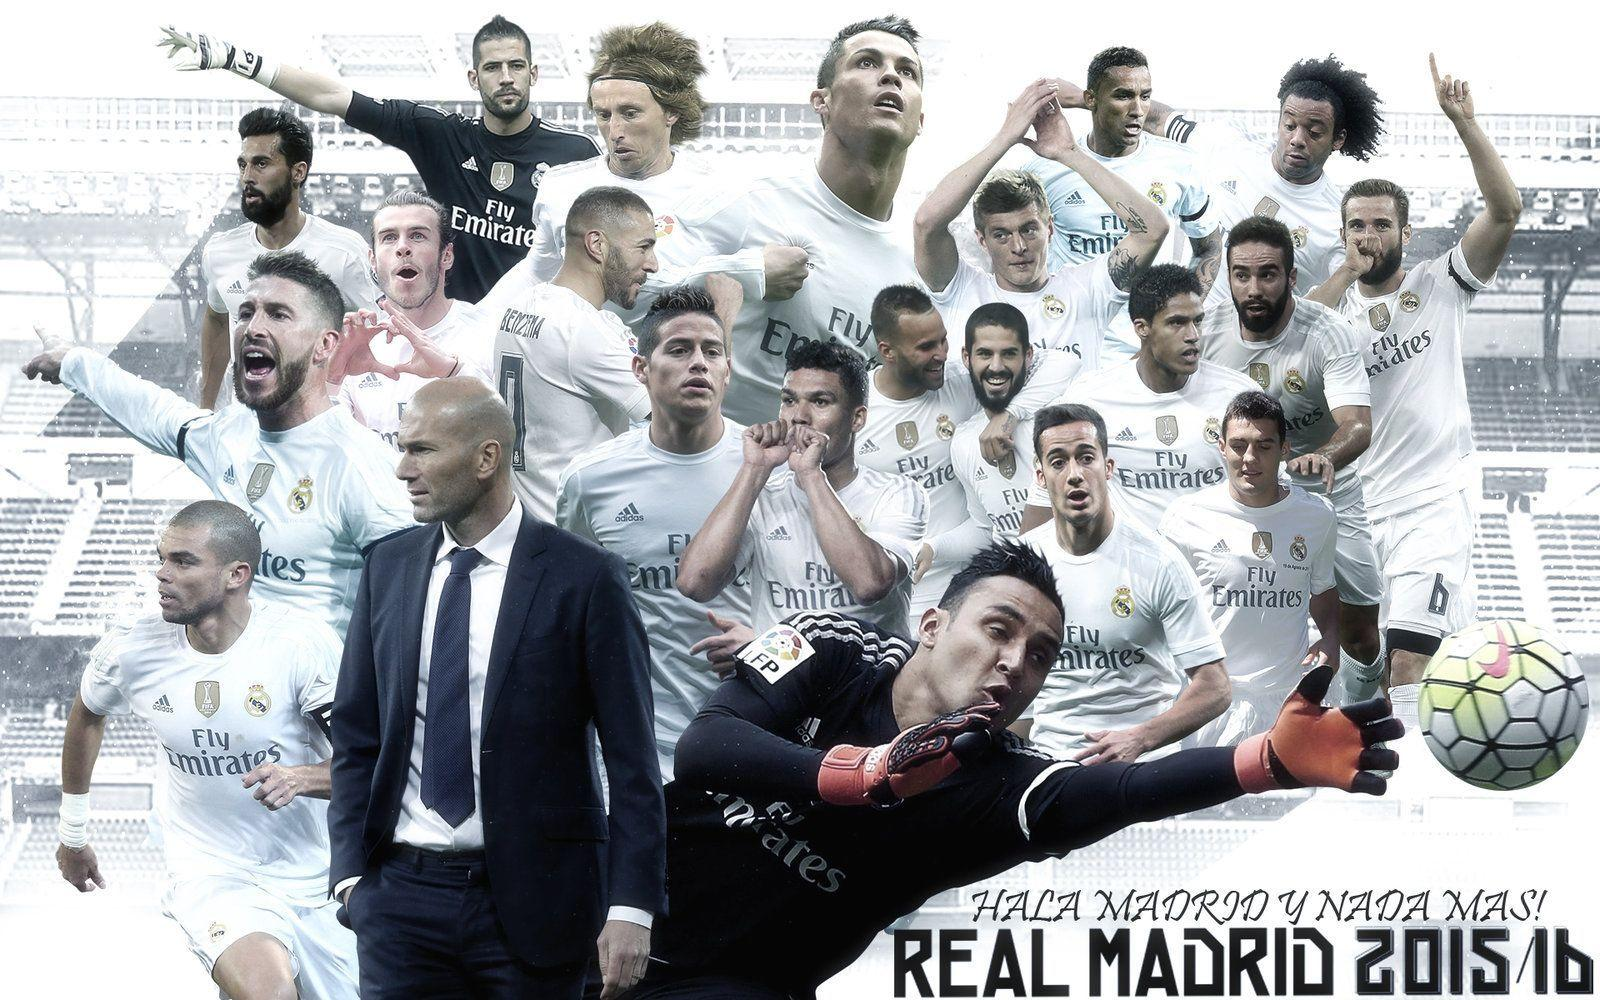 Wallpapers real madrid 2016 deviantart wallpaper cave - Real madrid pictures wallpapers 2017 ...